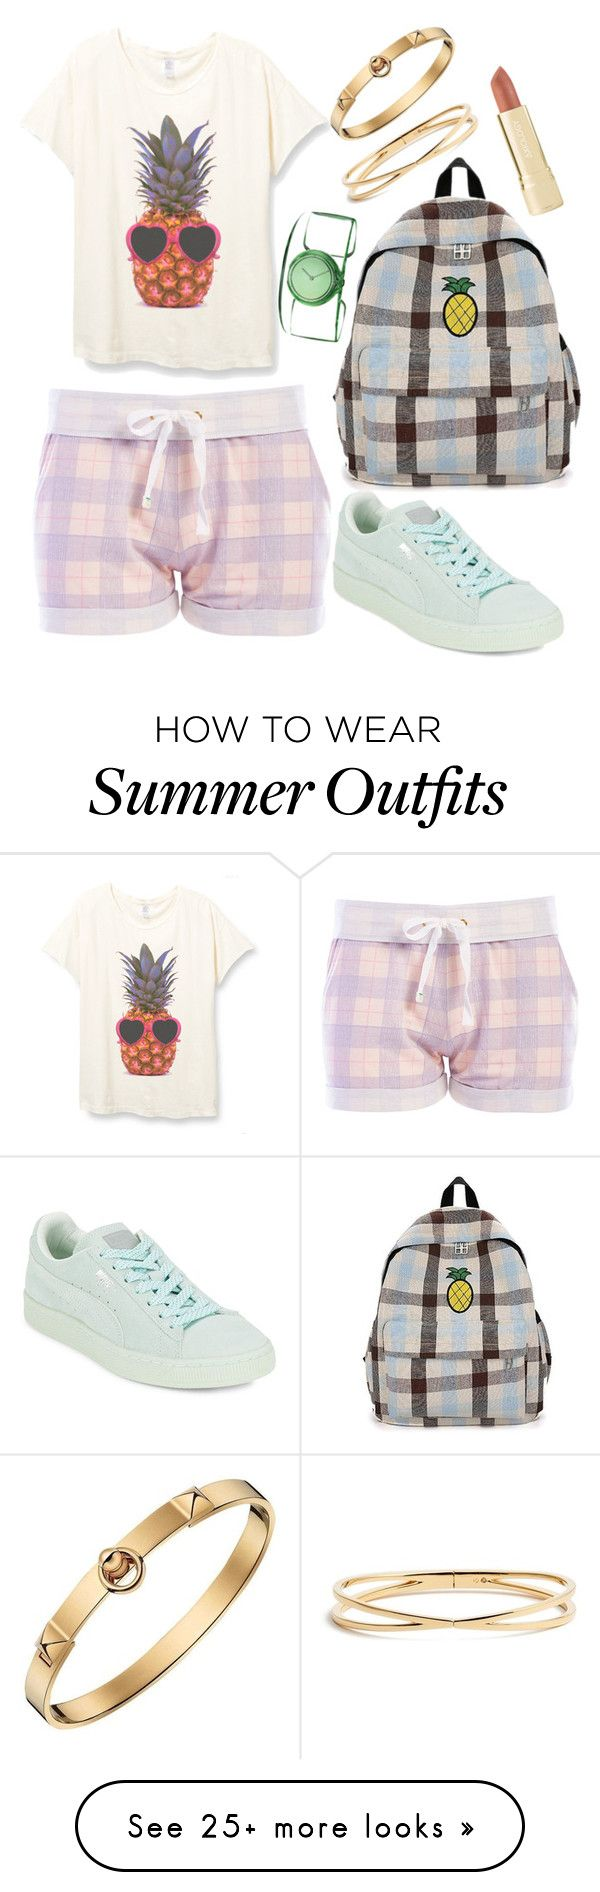 "c9bdd7e7473b ""Sweet Tumblr Summer 1 Outfit"" by agos-dno75 on Polyvore featuring Honeydew  Intimates"